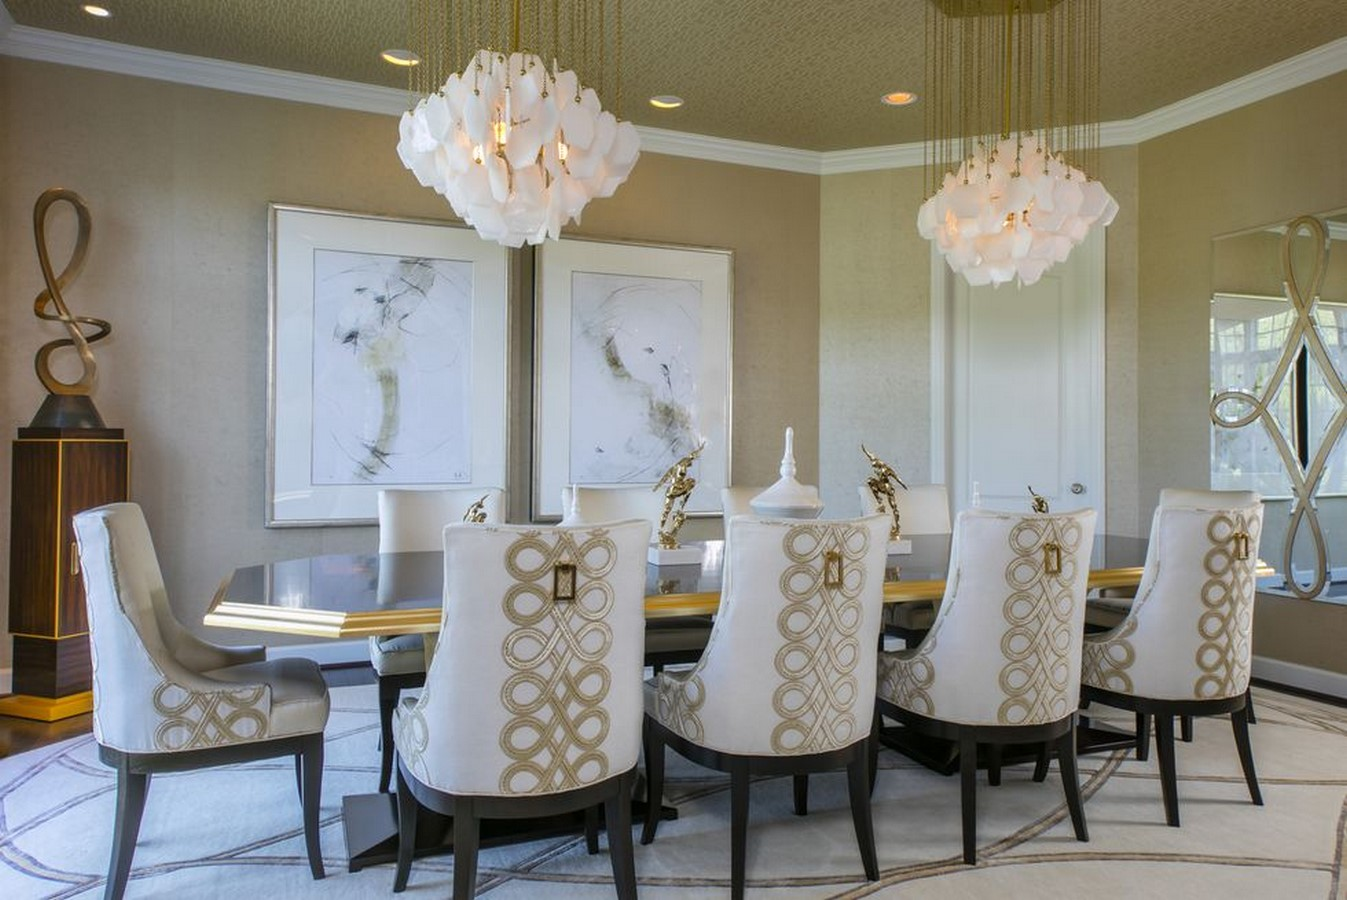 10 Dining rooms ideas that can enhance the space - Sheet13